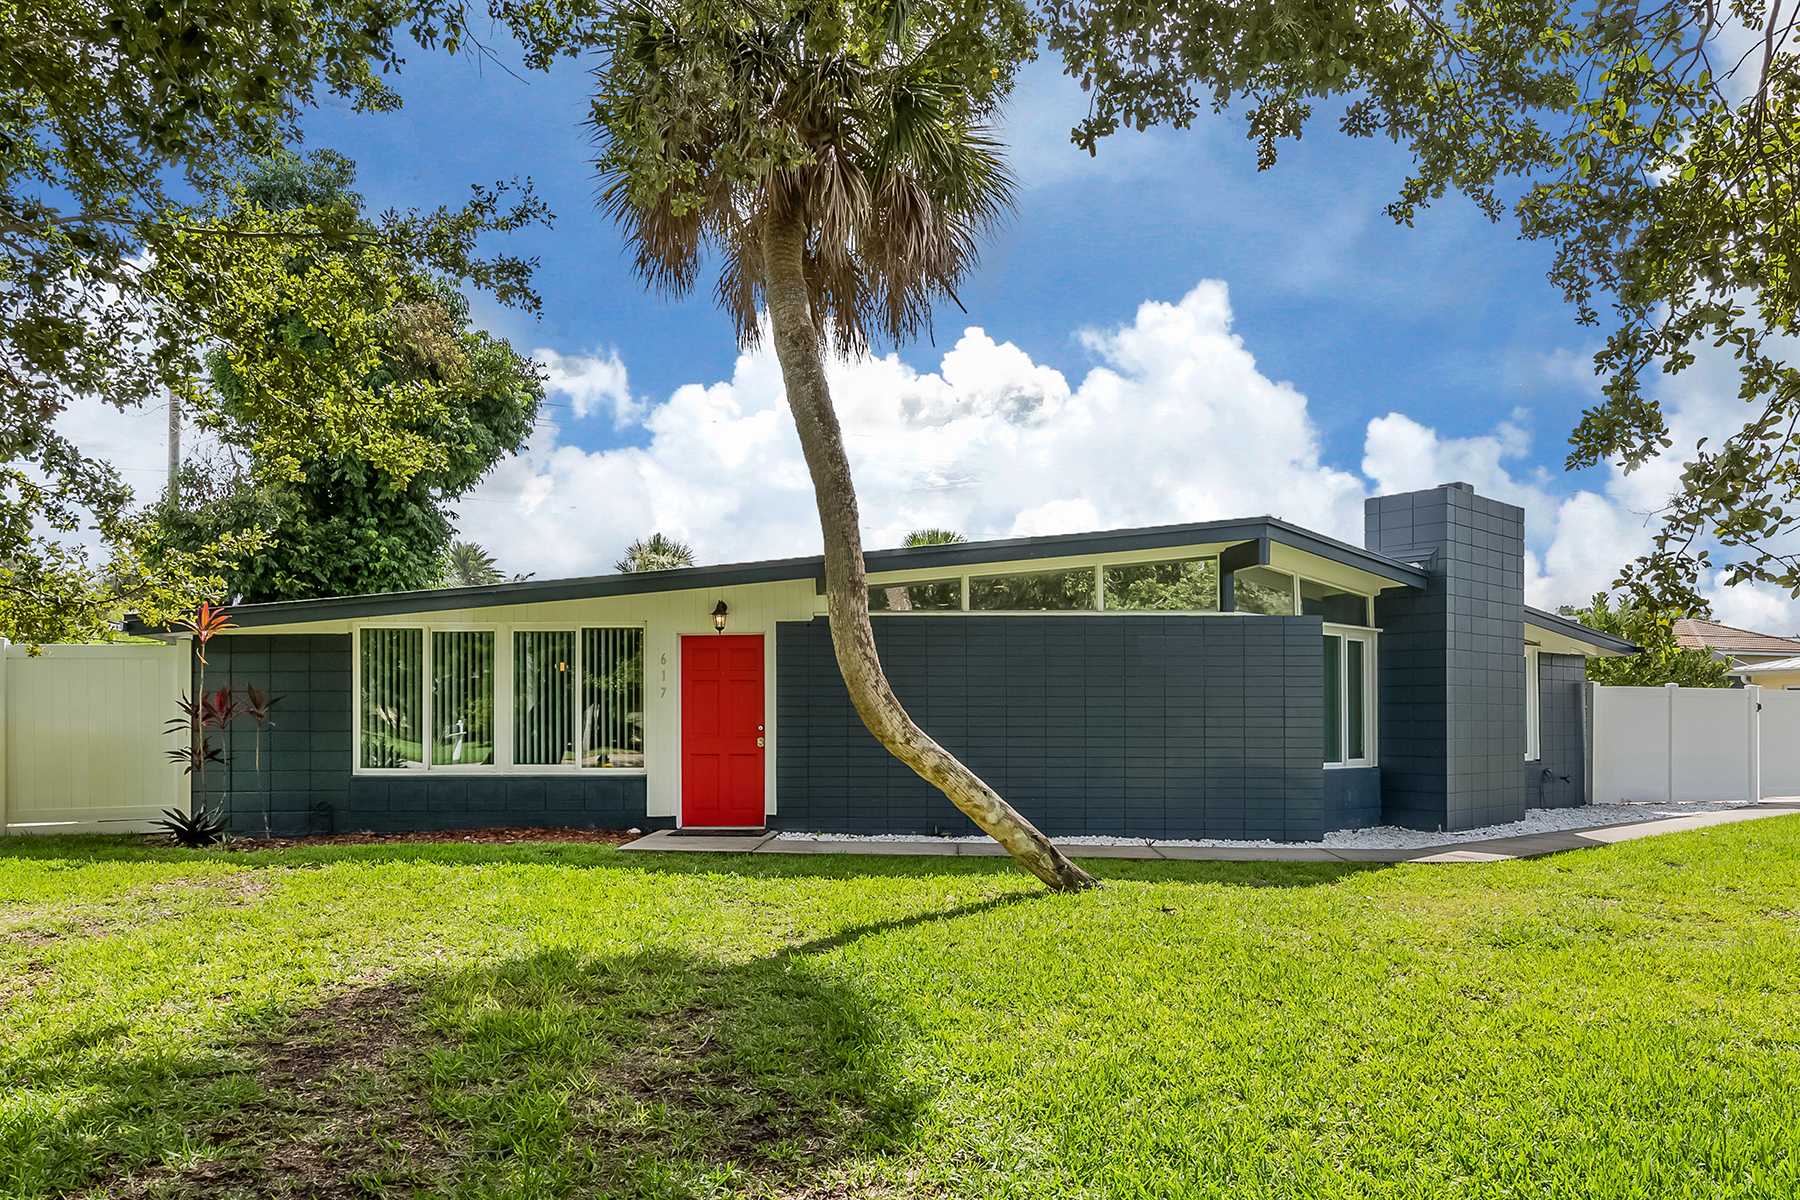 Single Family Homes for Sale at GOLDEN BEACH - VENICE ISLAND 617 Ravenna St, Venice, Florida 34285 United States